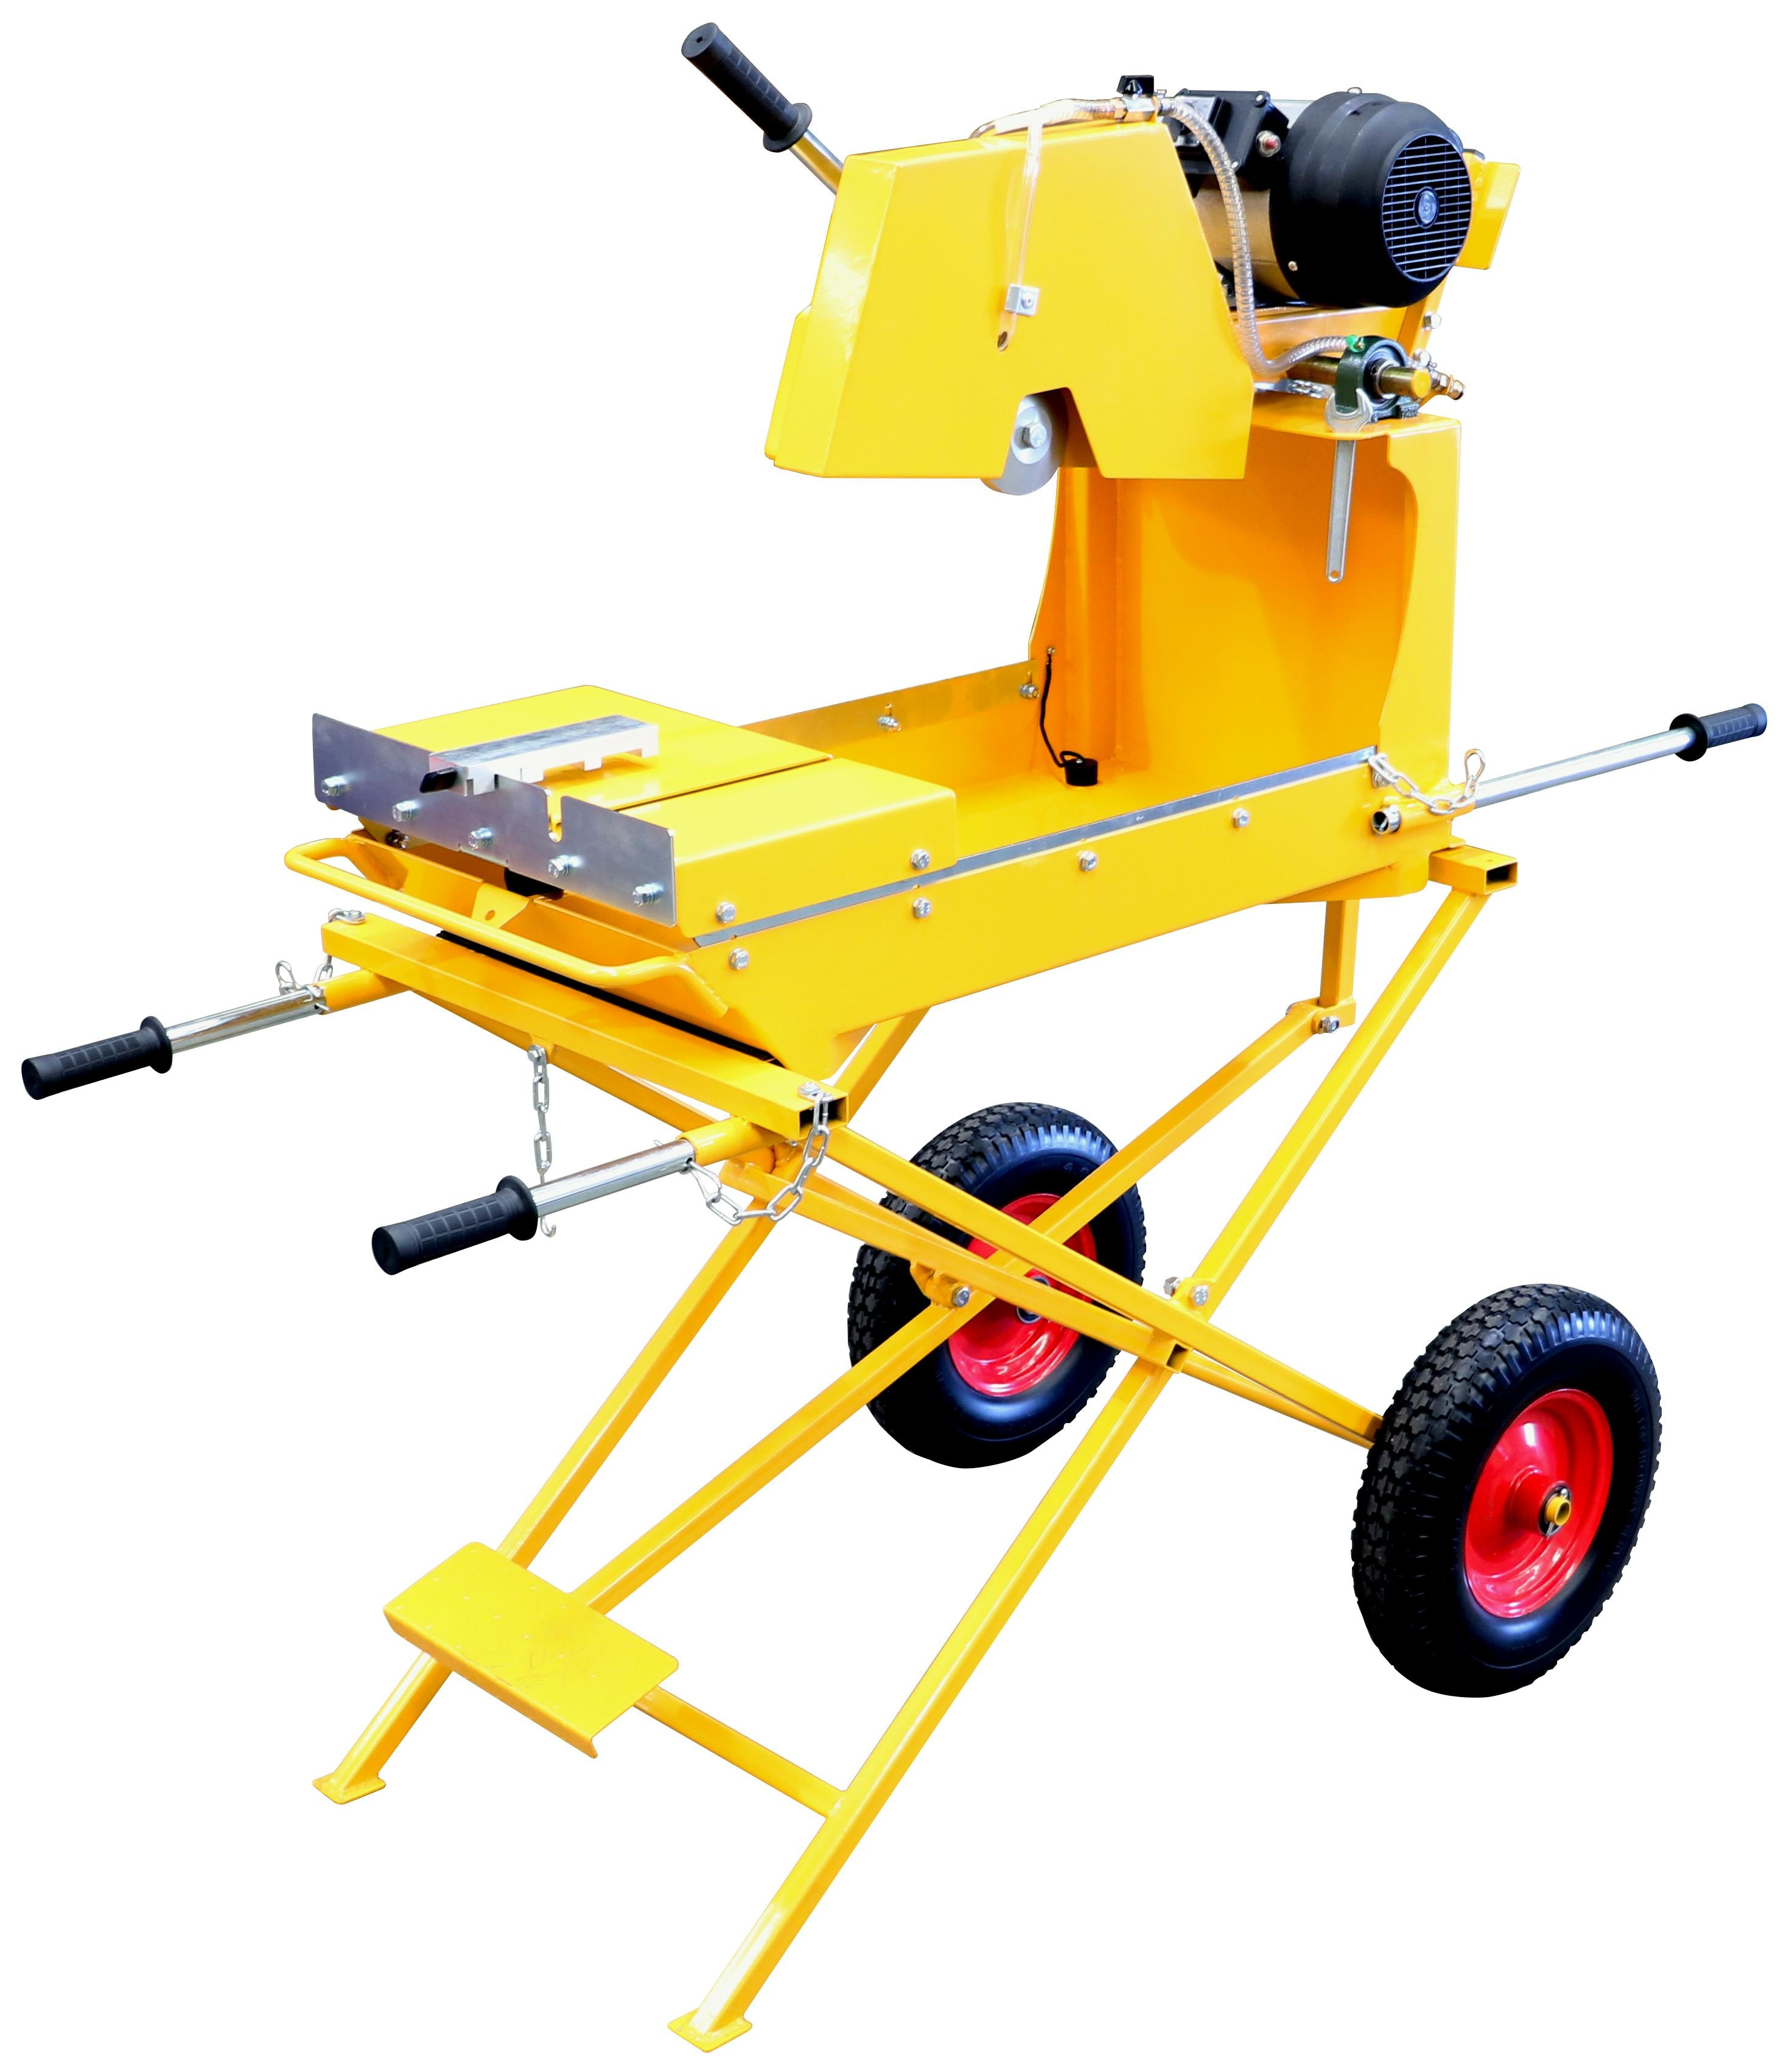 crommelins-electric-bricksaw.jpg